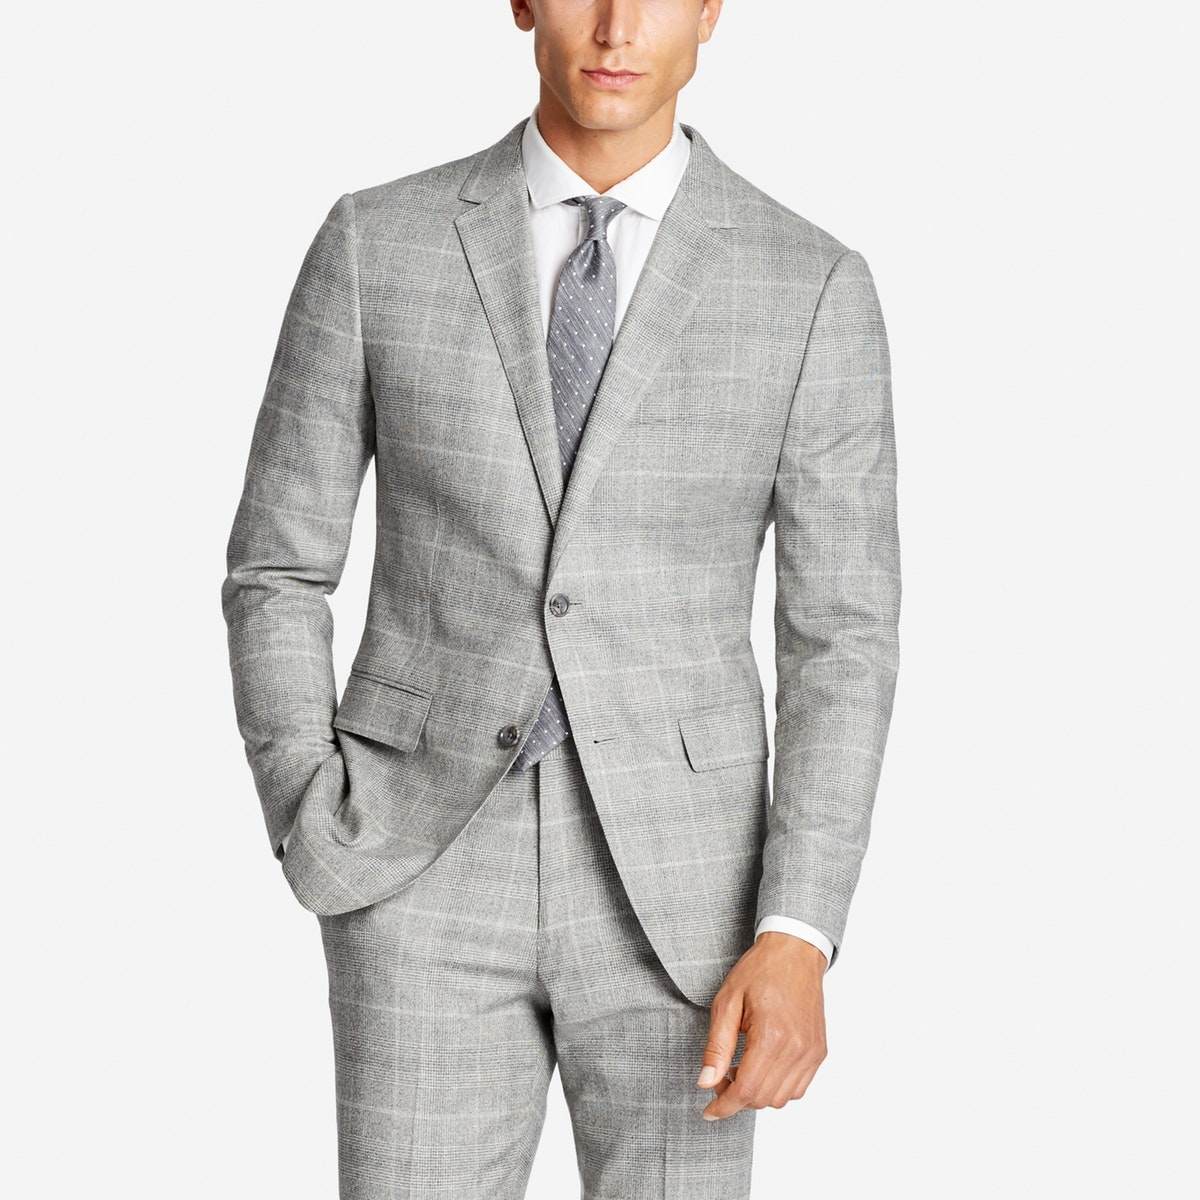 Jetsetter Stretch Italian Wool Suit Jacket